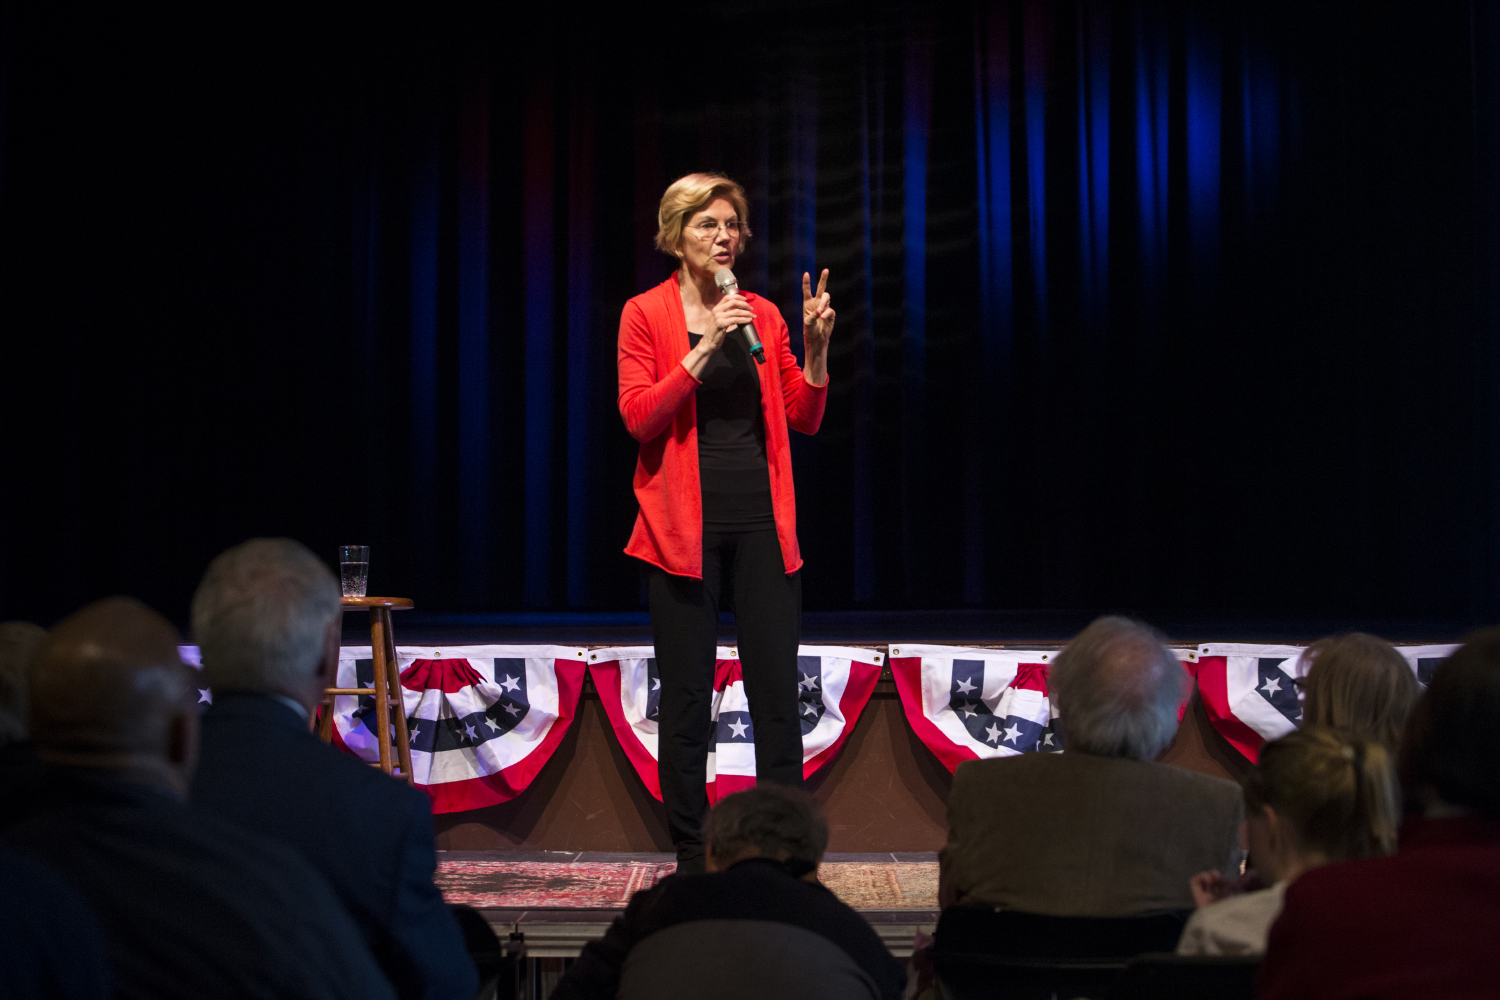 Senator Elizabeth Warren address a crowd of voters at CSPS Hall in Cedar Rapids. The event was hosted by the Linn Phoenix Club for Senator Elizabeth Warren.